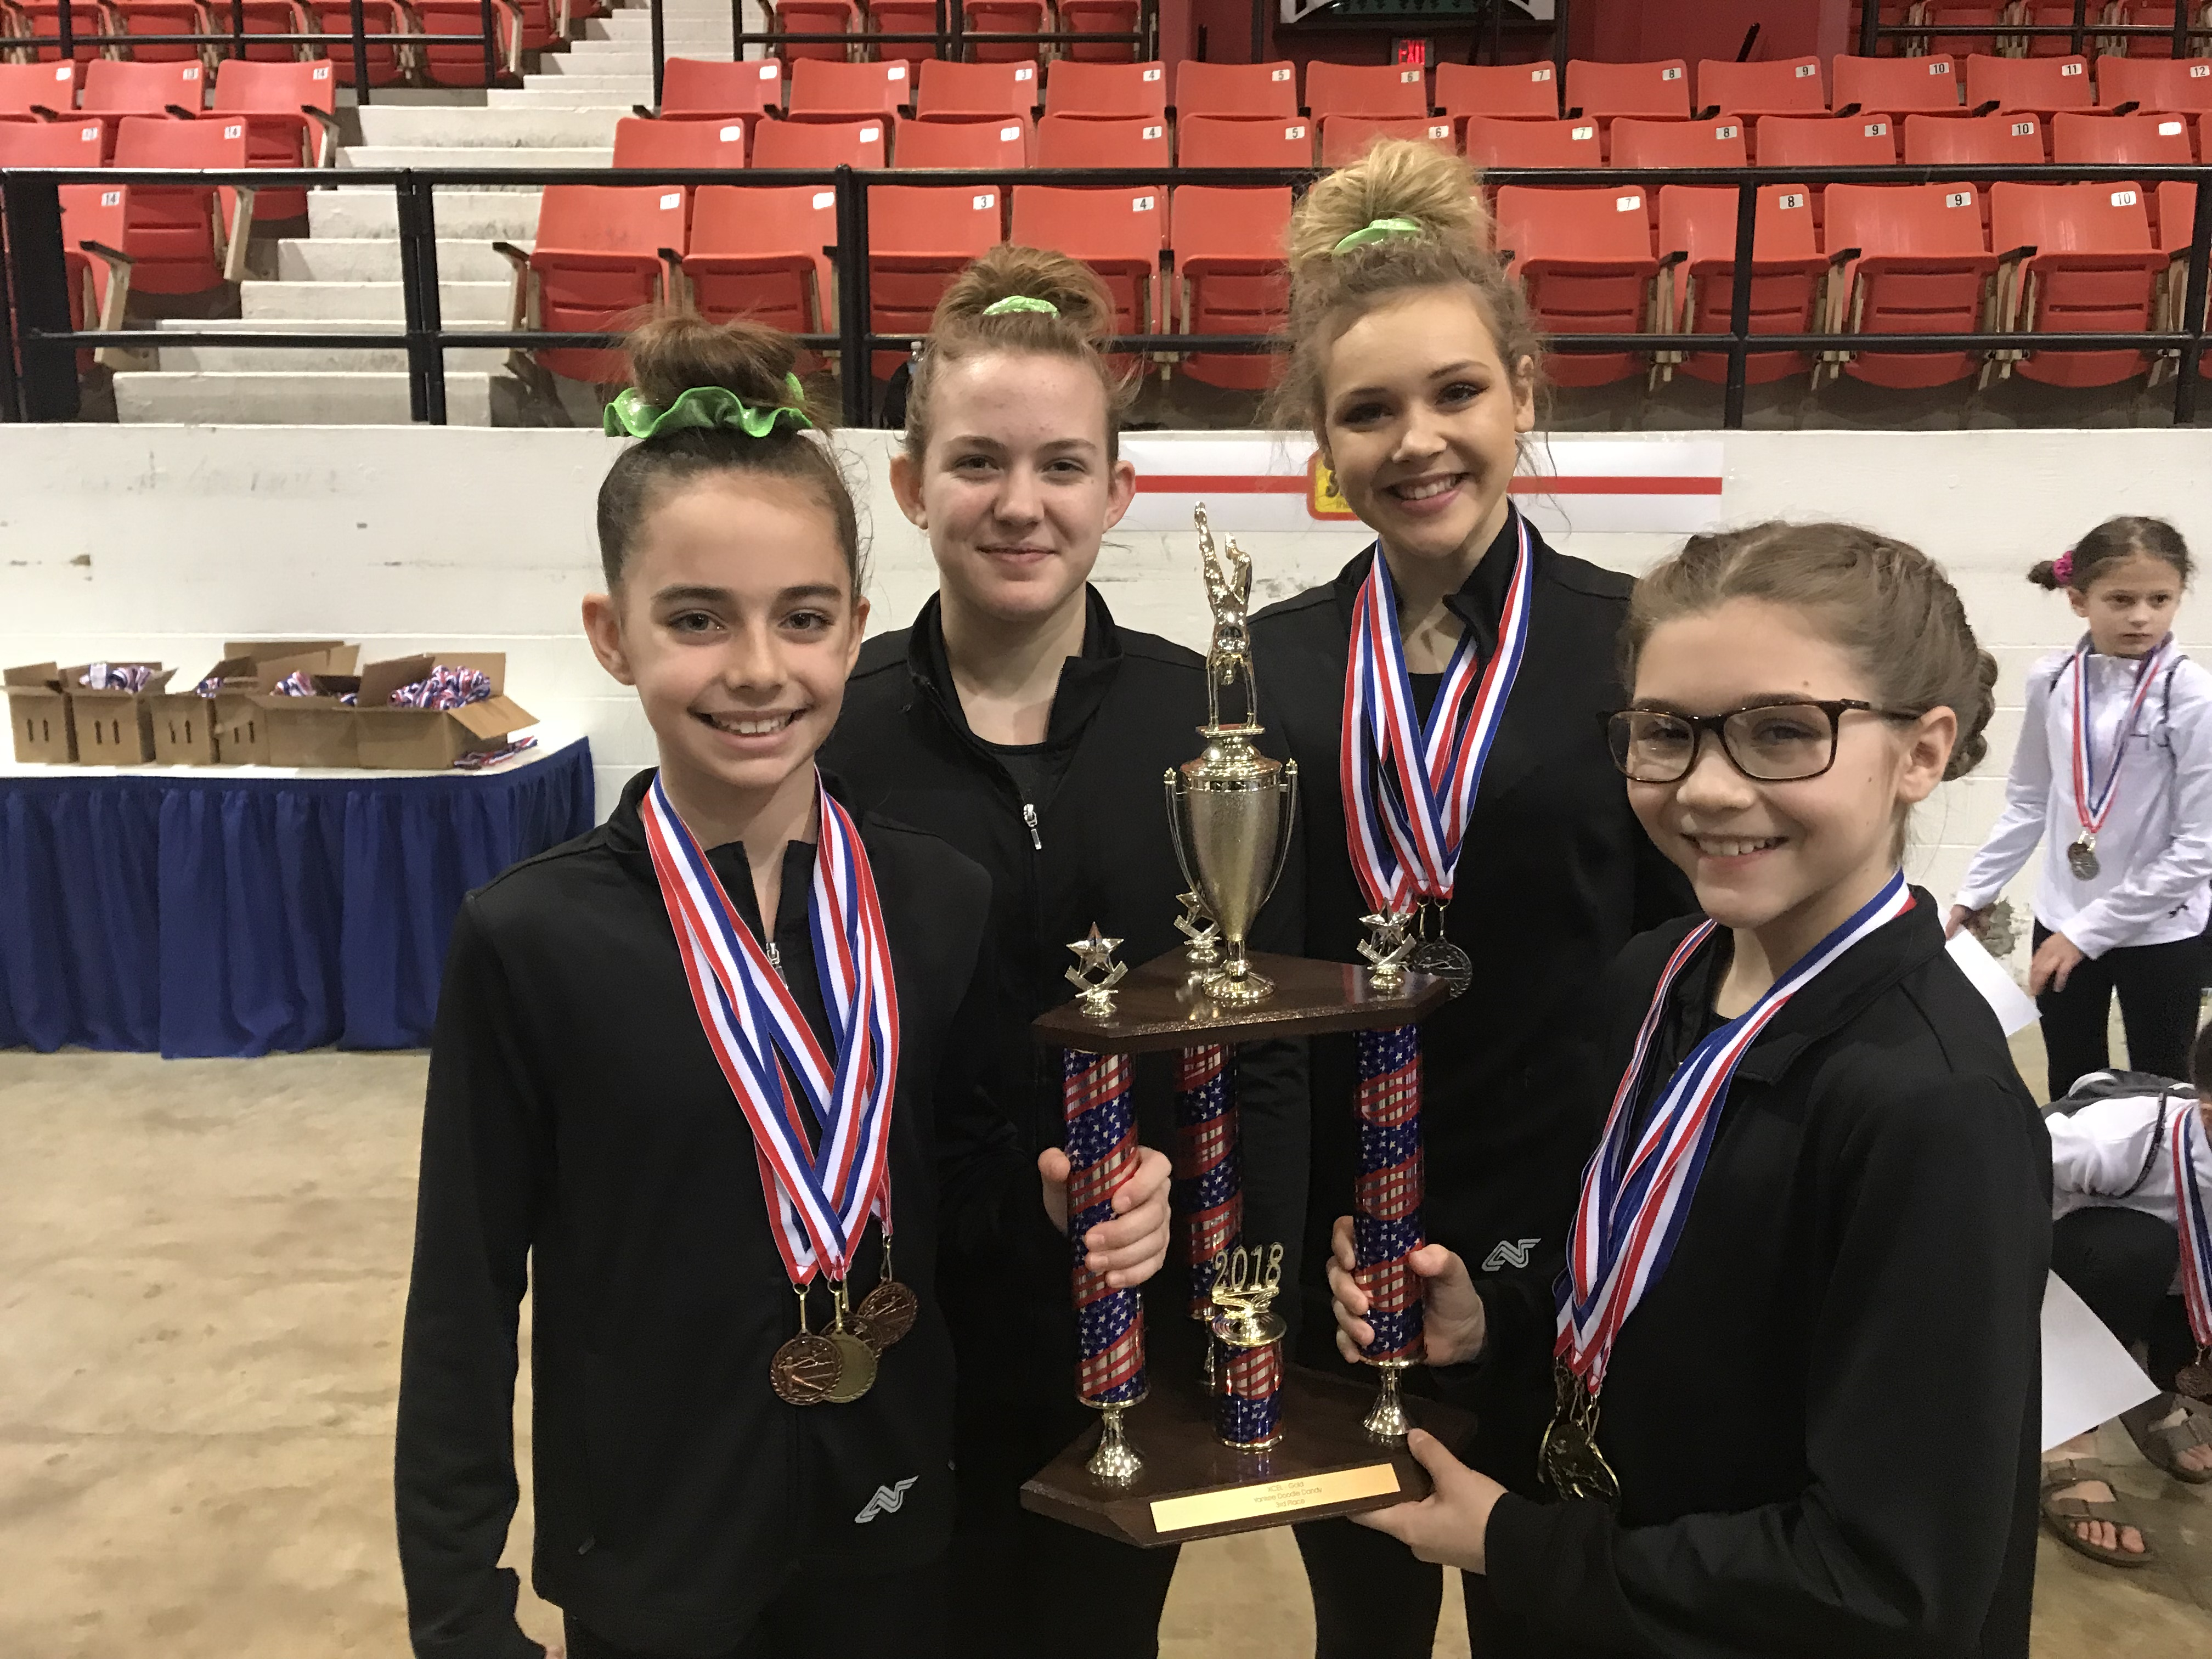 Competition girls holding a trophy